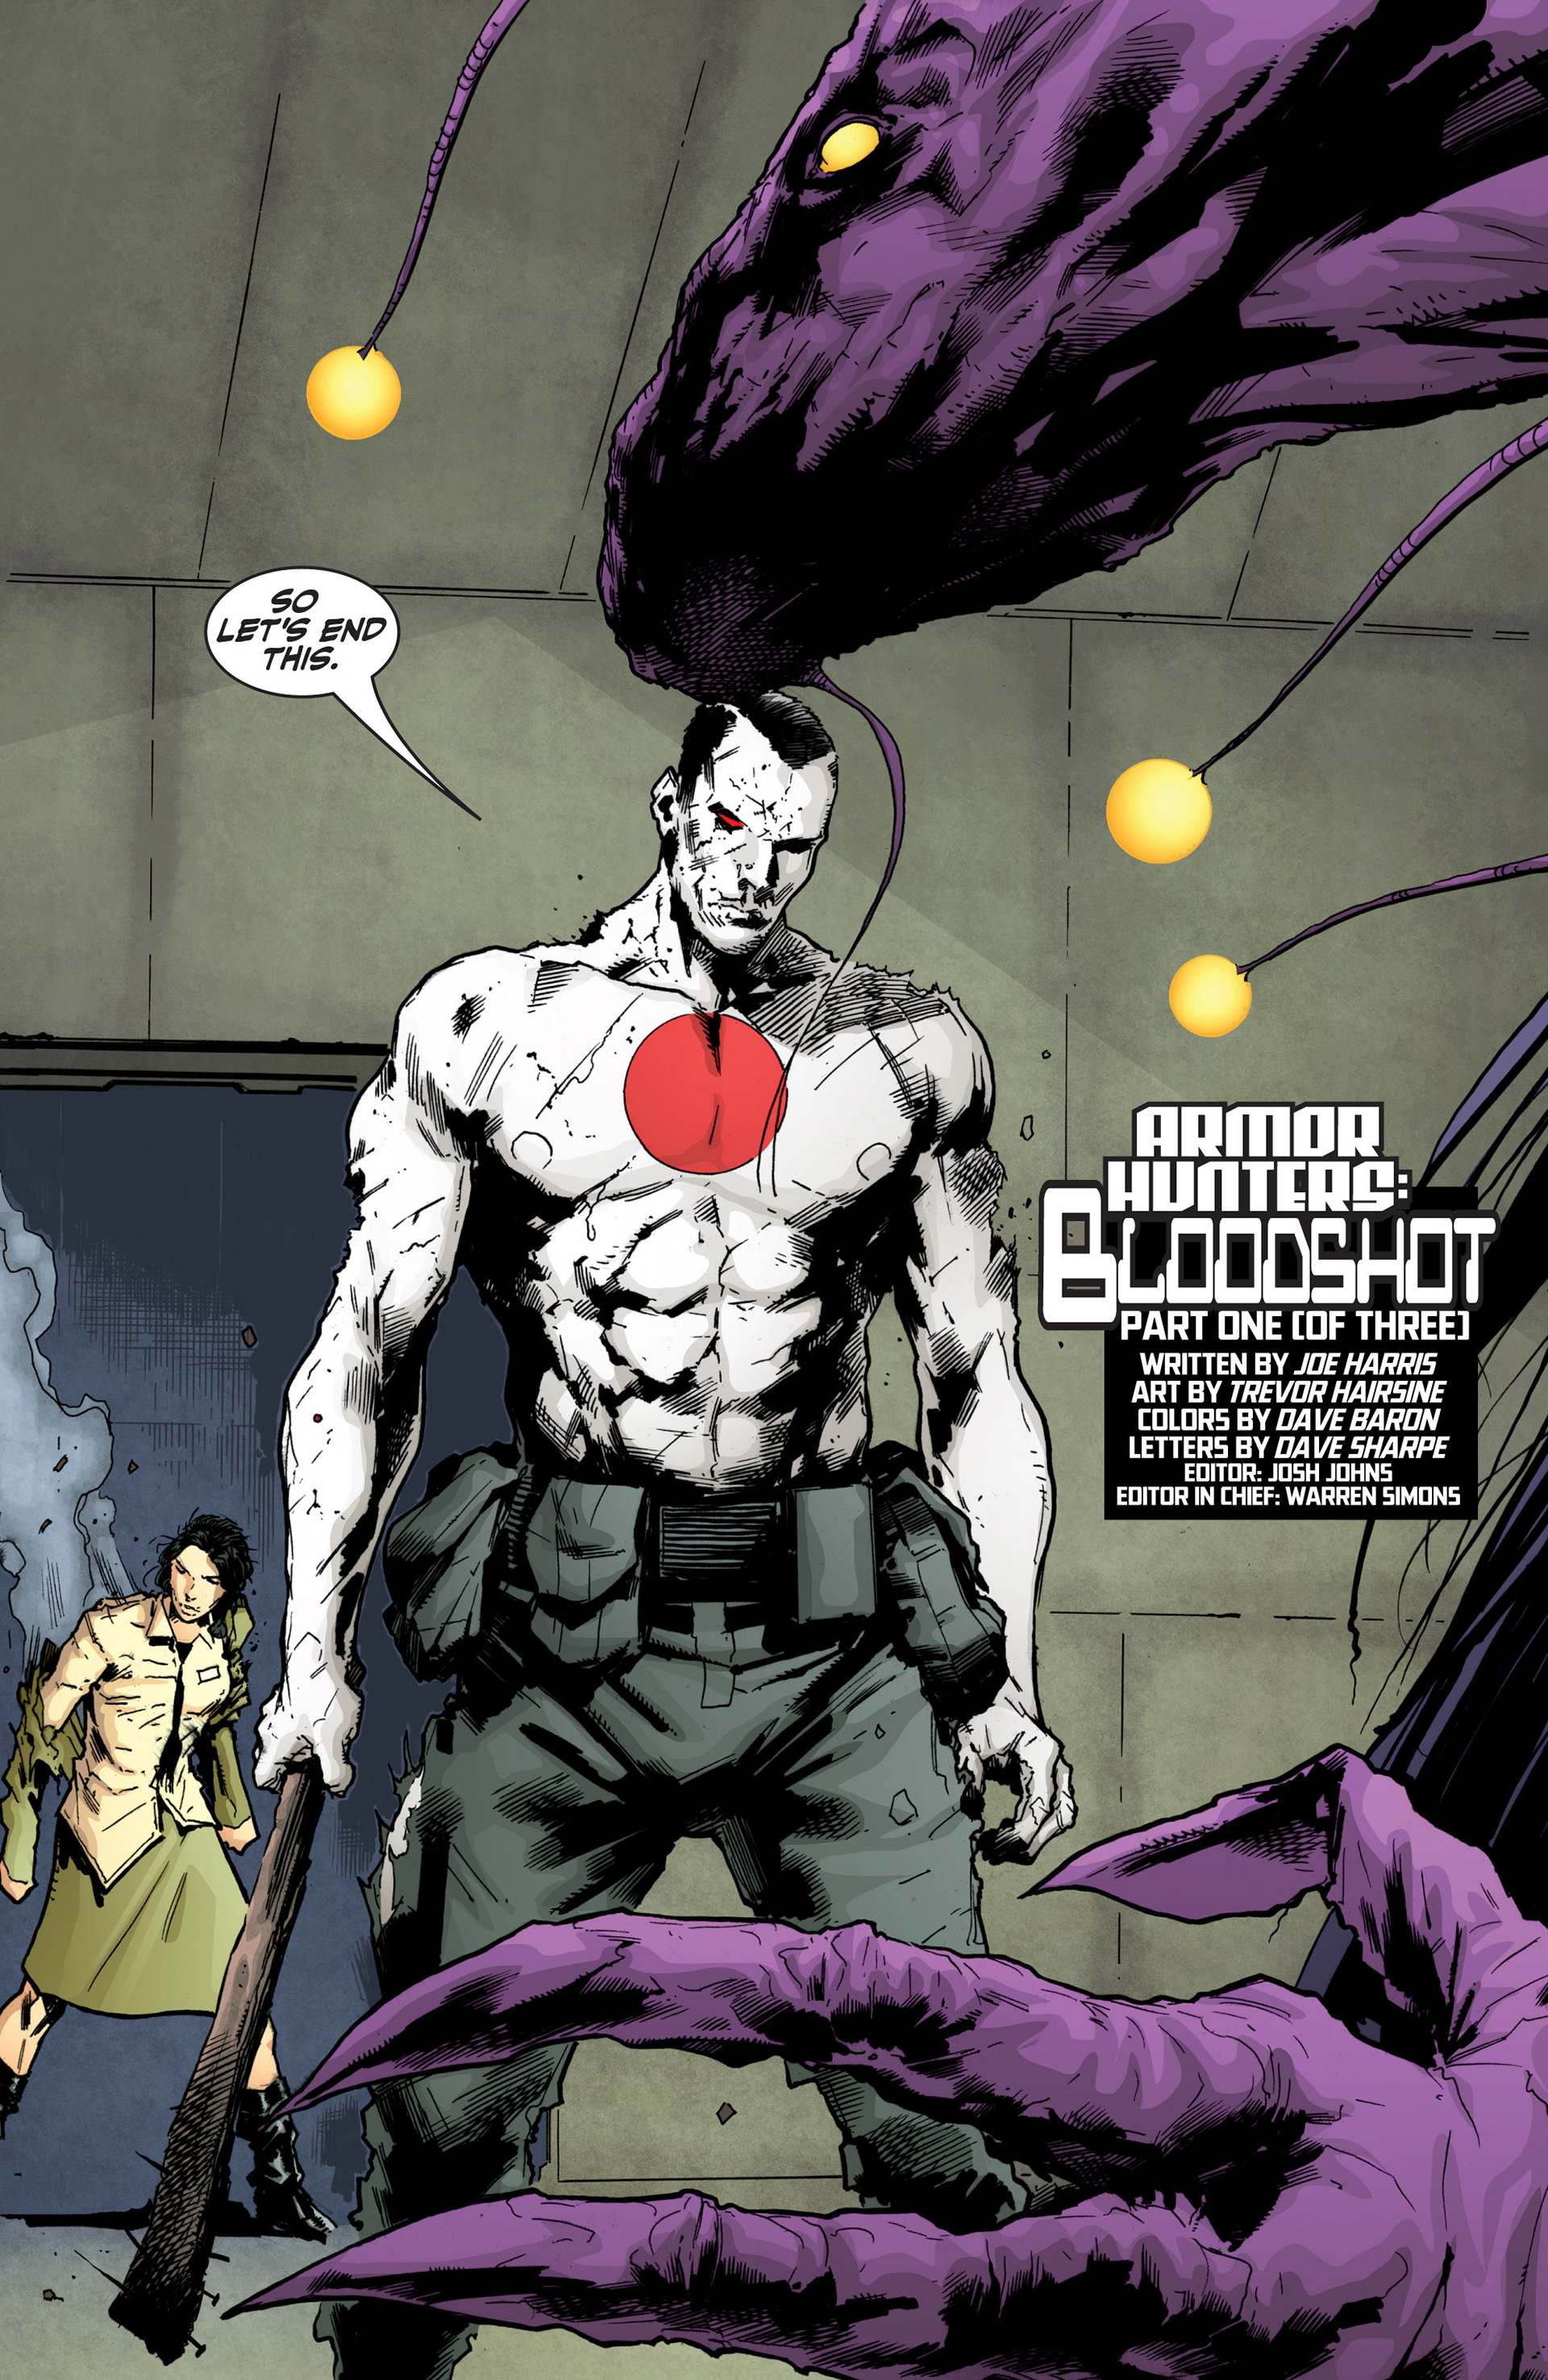 Read online Armor Hunters: Bloodshot comic -  Issue #1 - 27